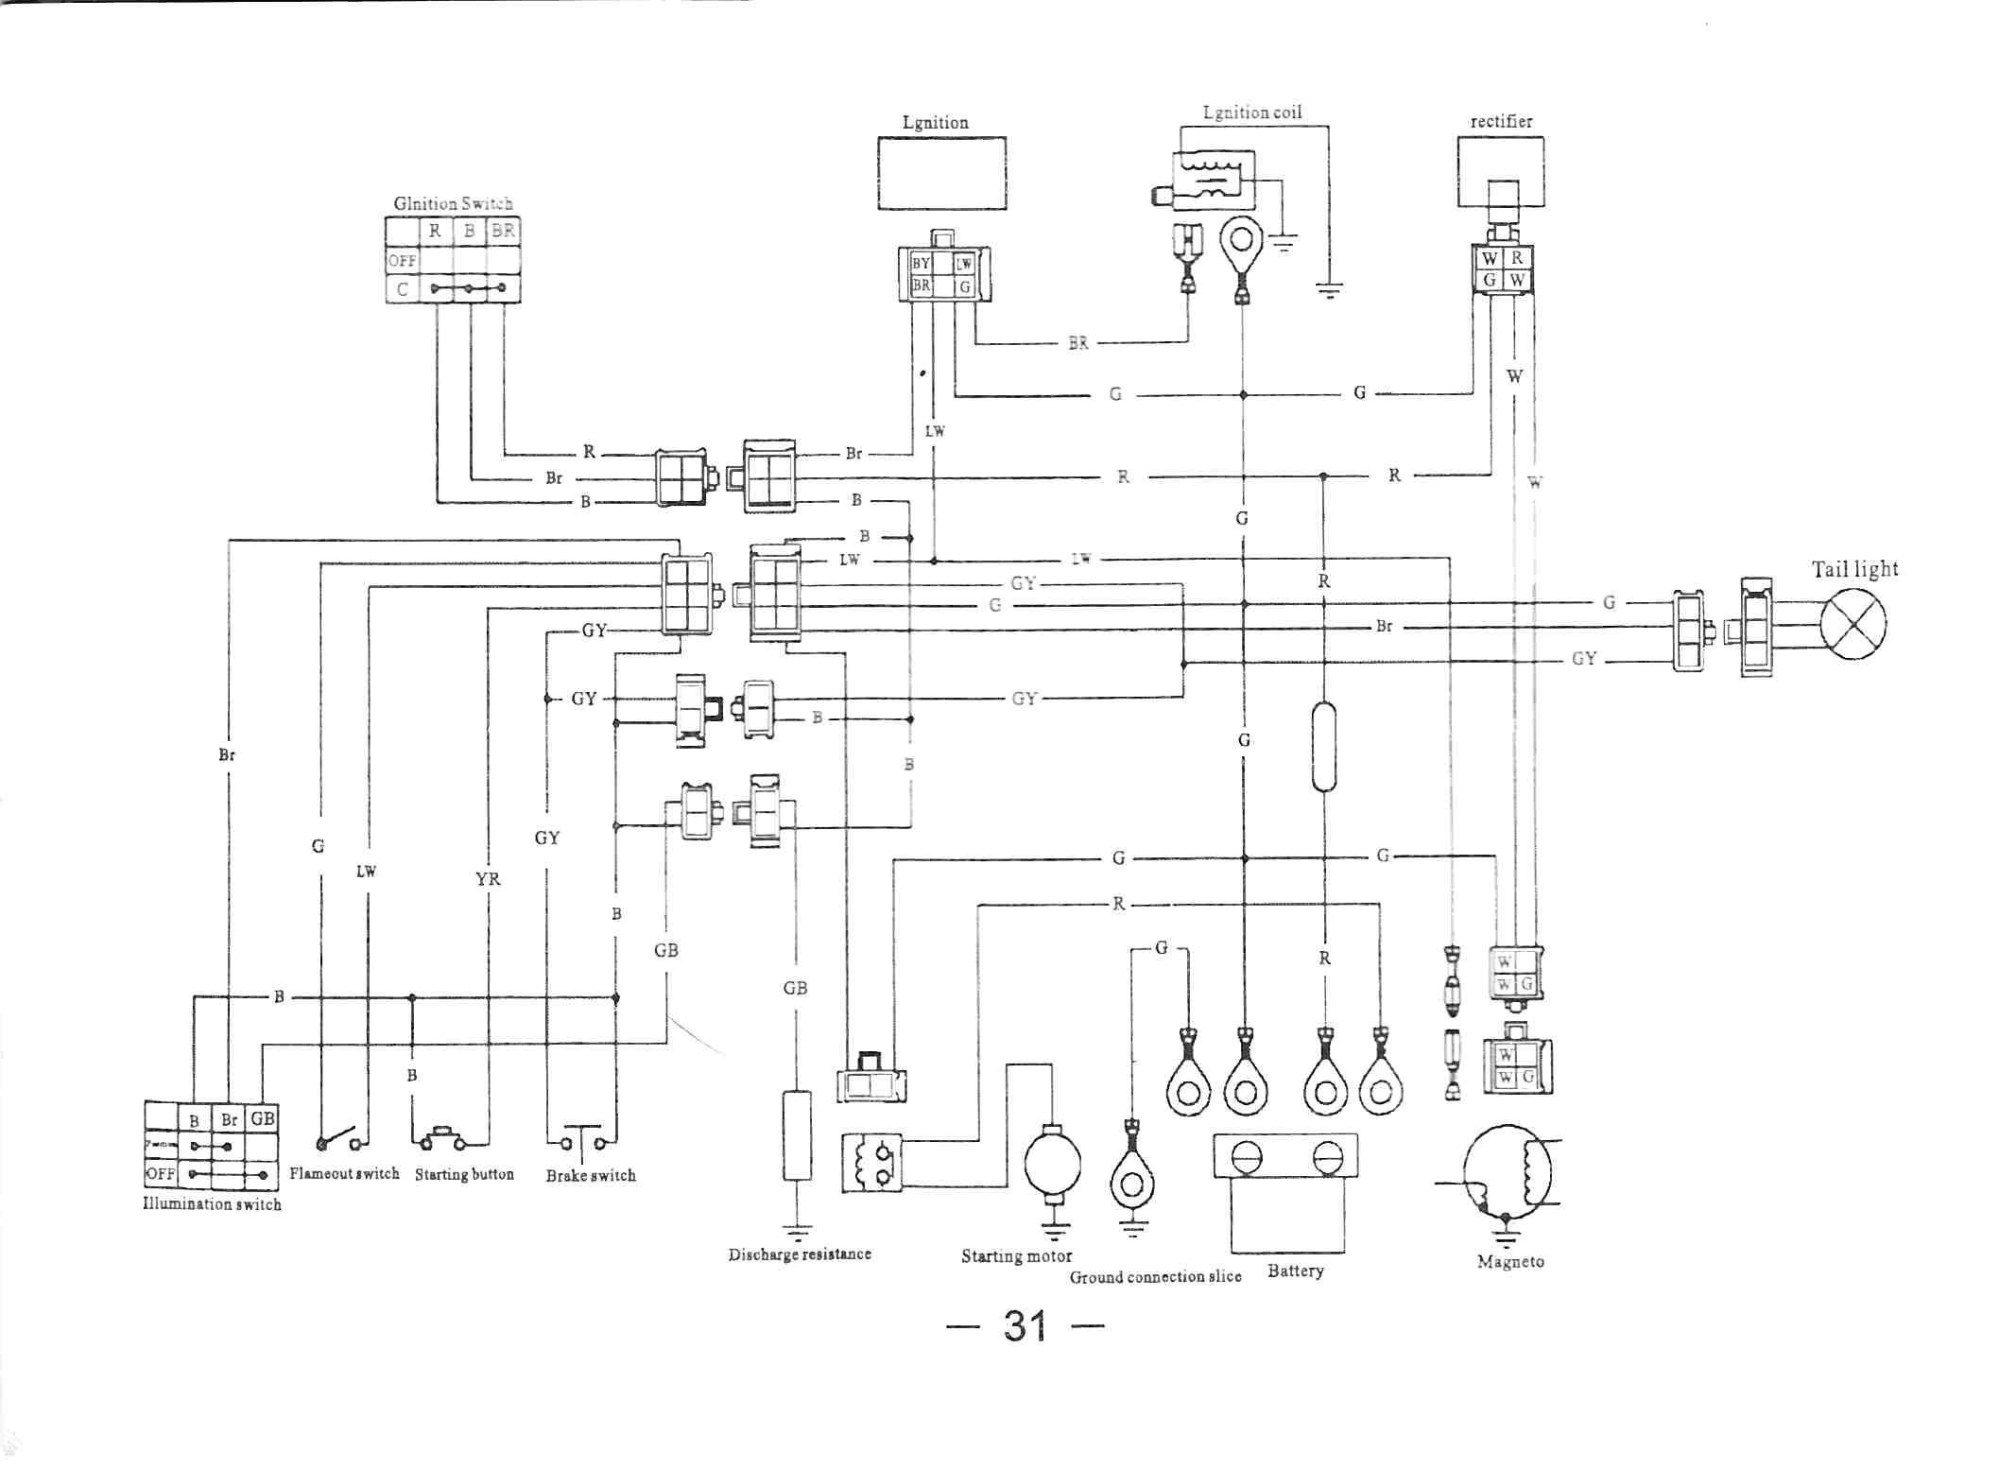 hight resolution of c7 panasonic car stereo wiring harness diagram cq wiring diagramc7 panasonic car stereo wiring harness diagram